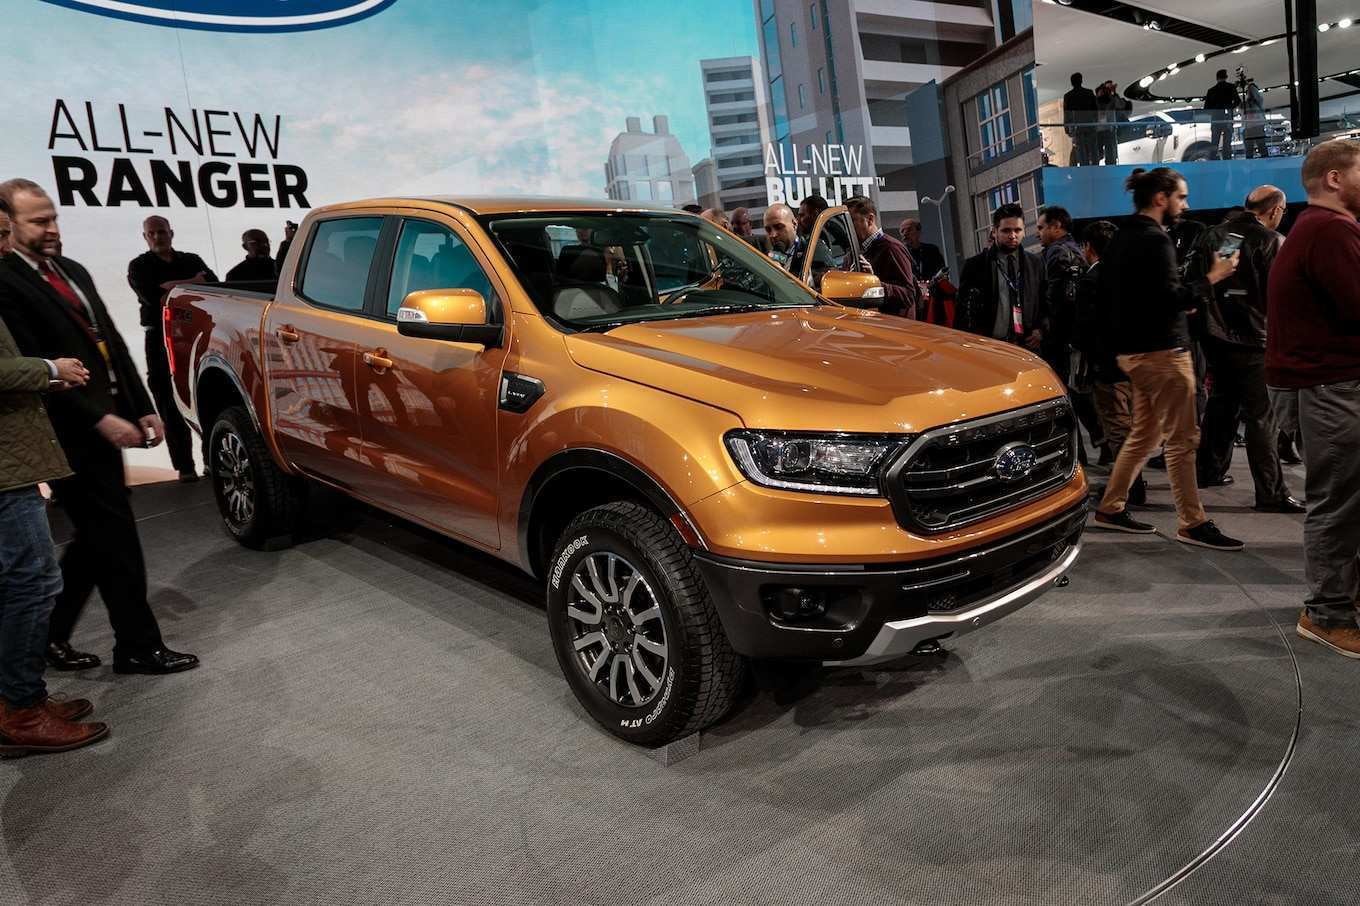 30 Concept of 2019 Ford Ranger Engine Options Release Date by 2019 Ford Ranger Engine Options